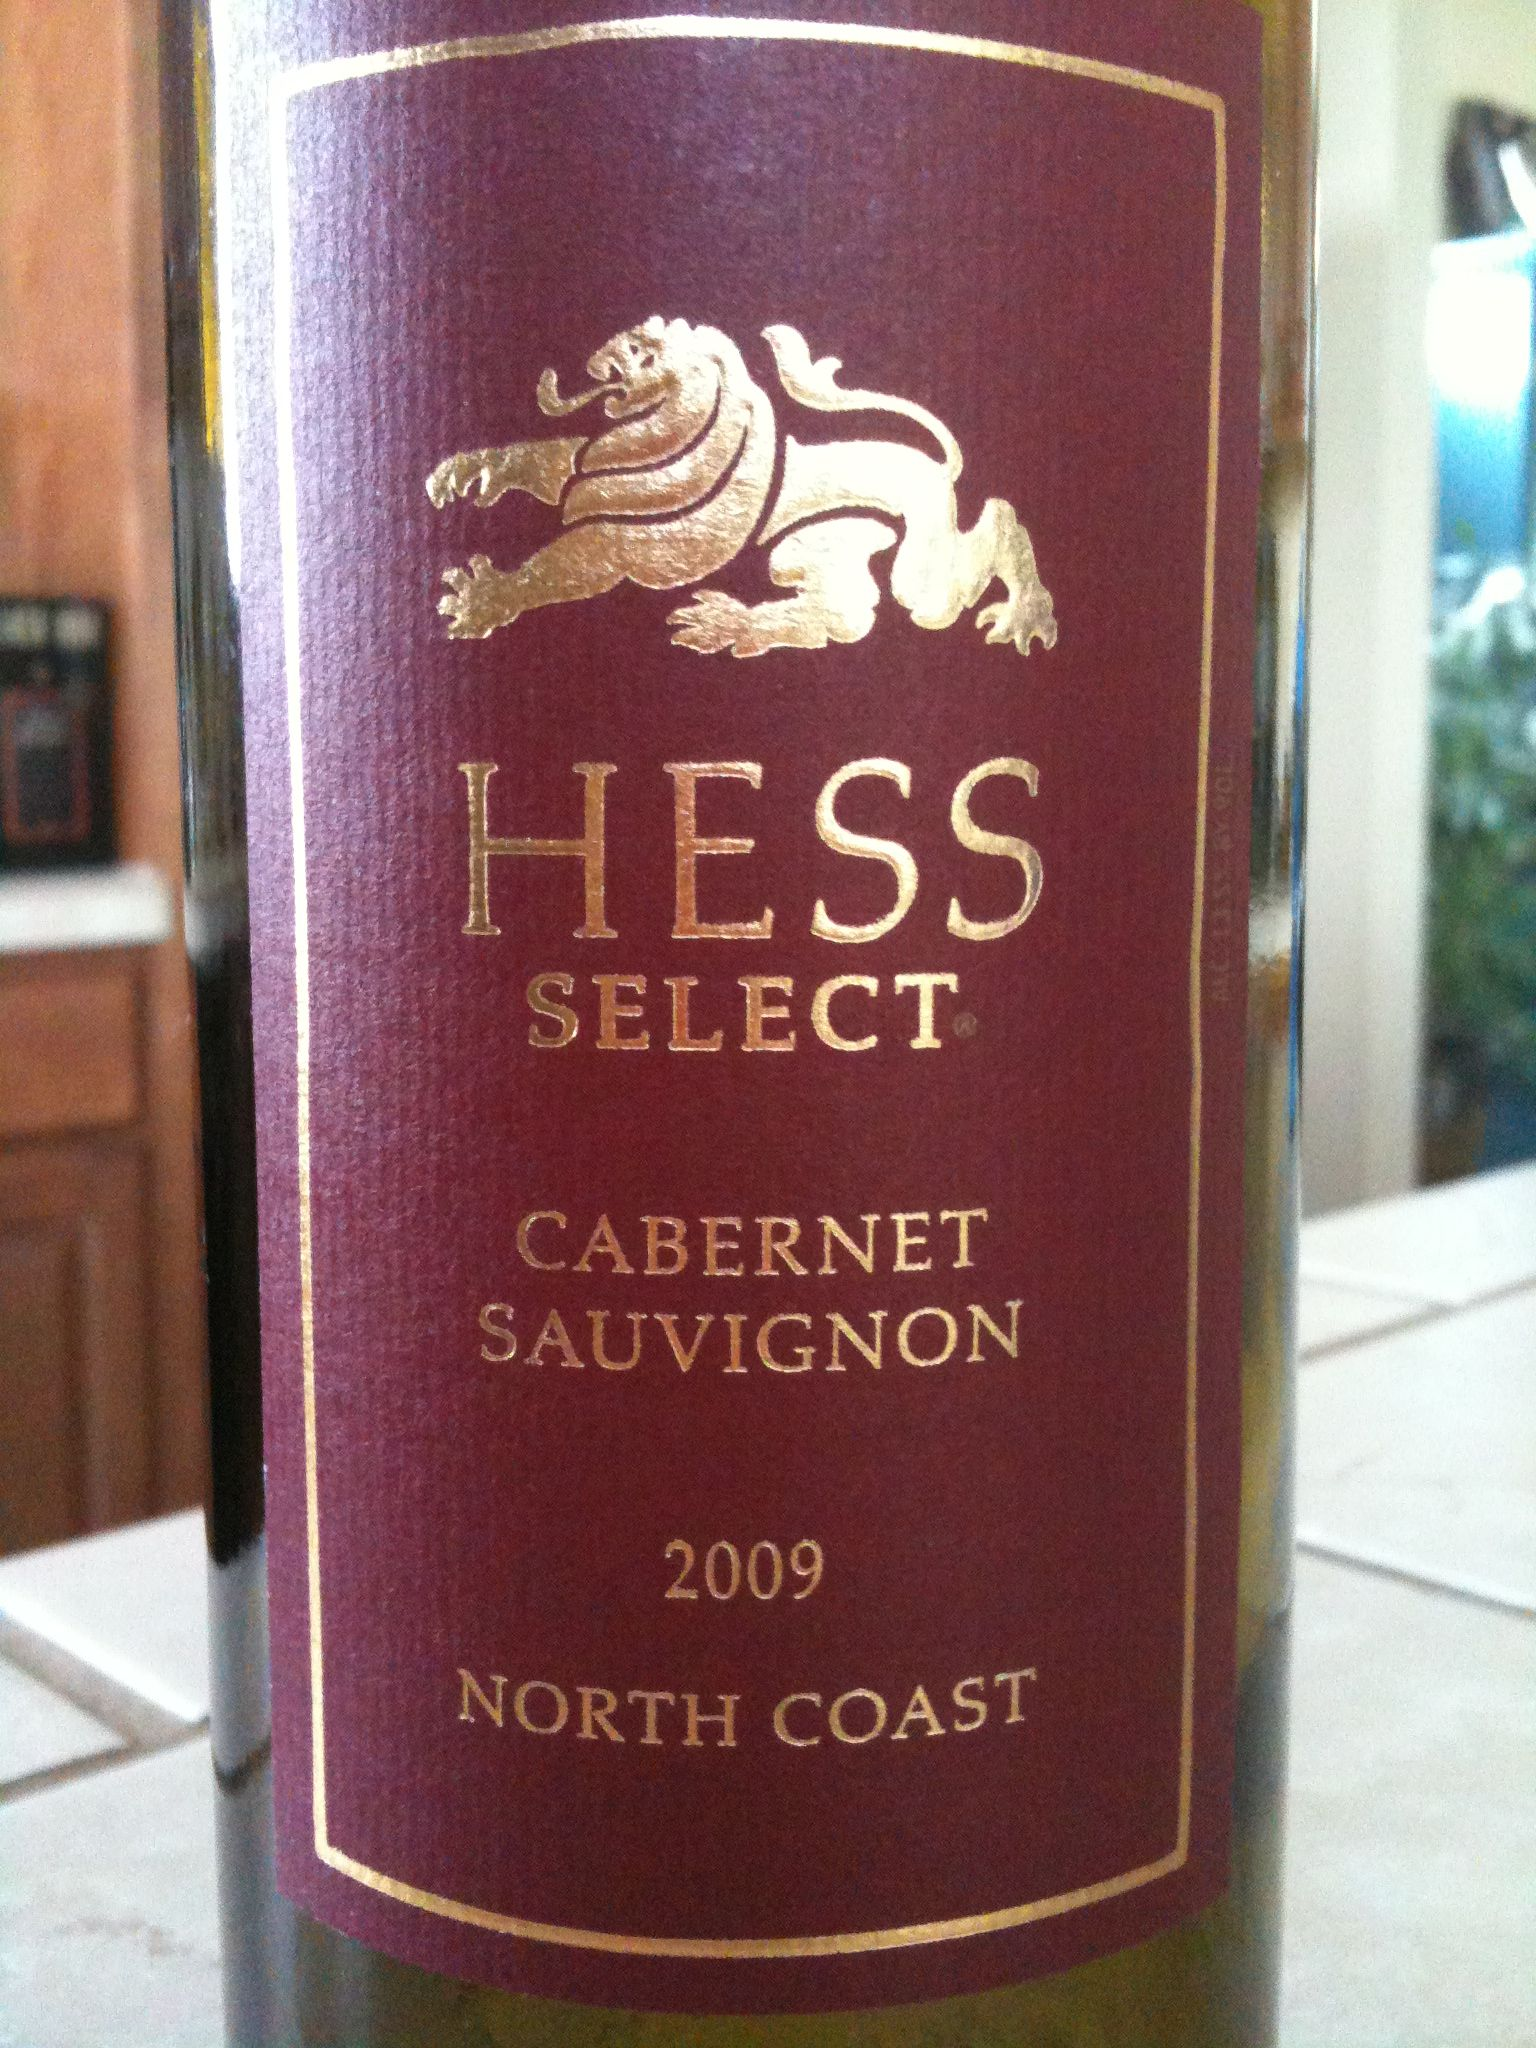 Hess Select Cabernet Sauvignon Very Good Wine Cabernet Sauvignon Wines Sauvignon